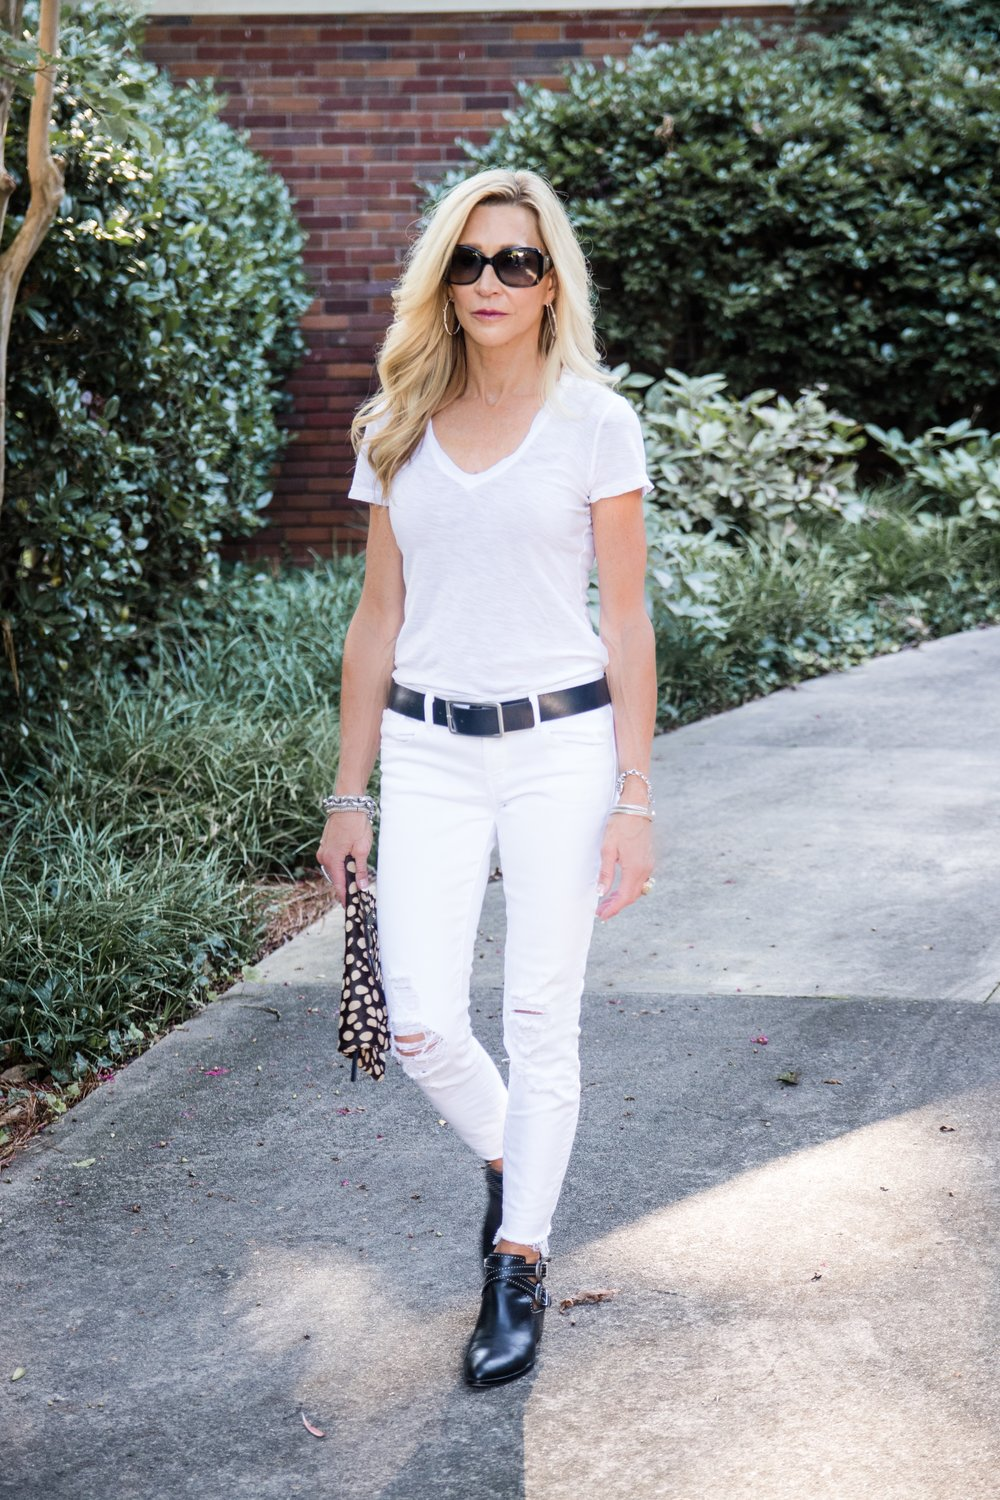 White jeans with dark accessories